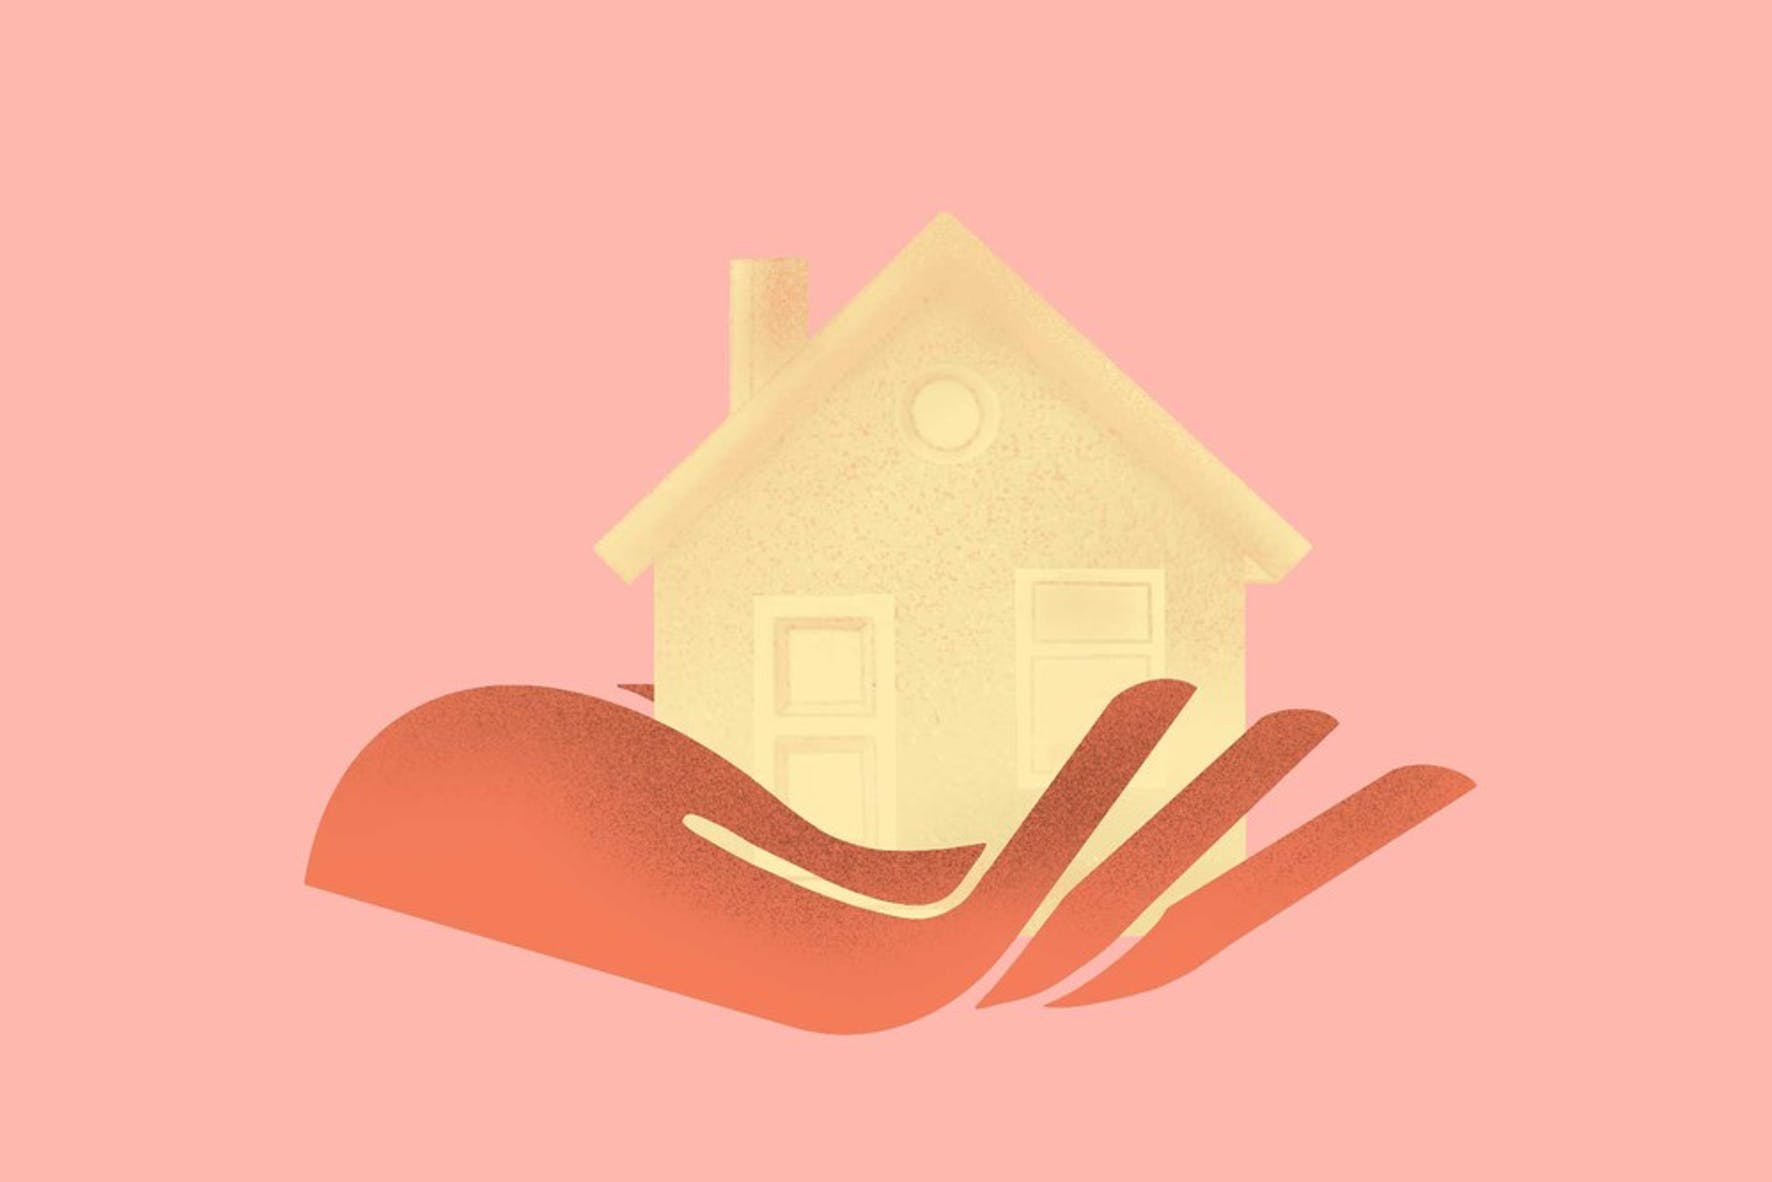 By signing a personal guarantee, personal assets such as your house are on the line if you default on a business loan